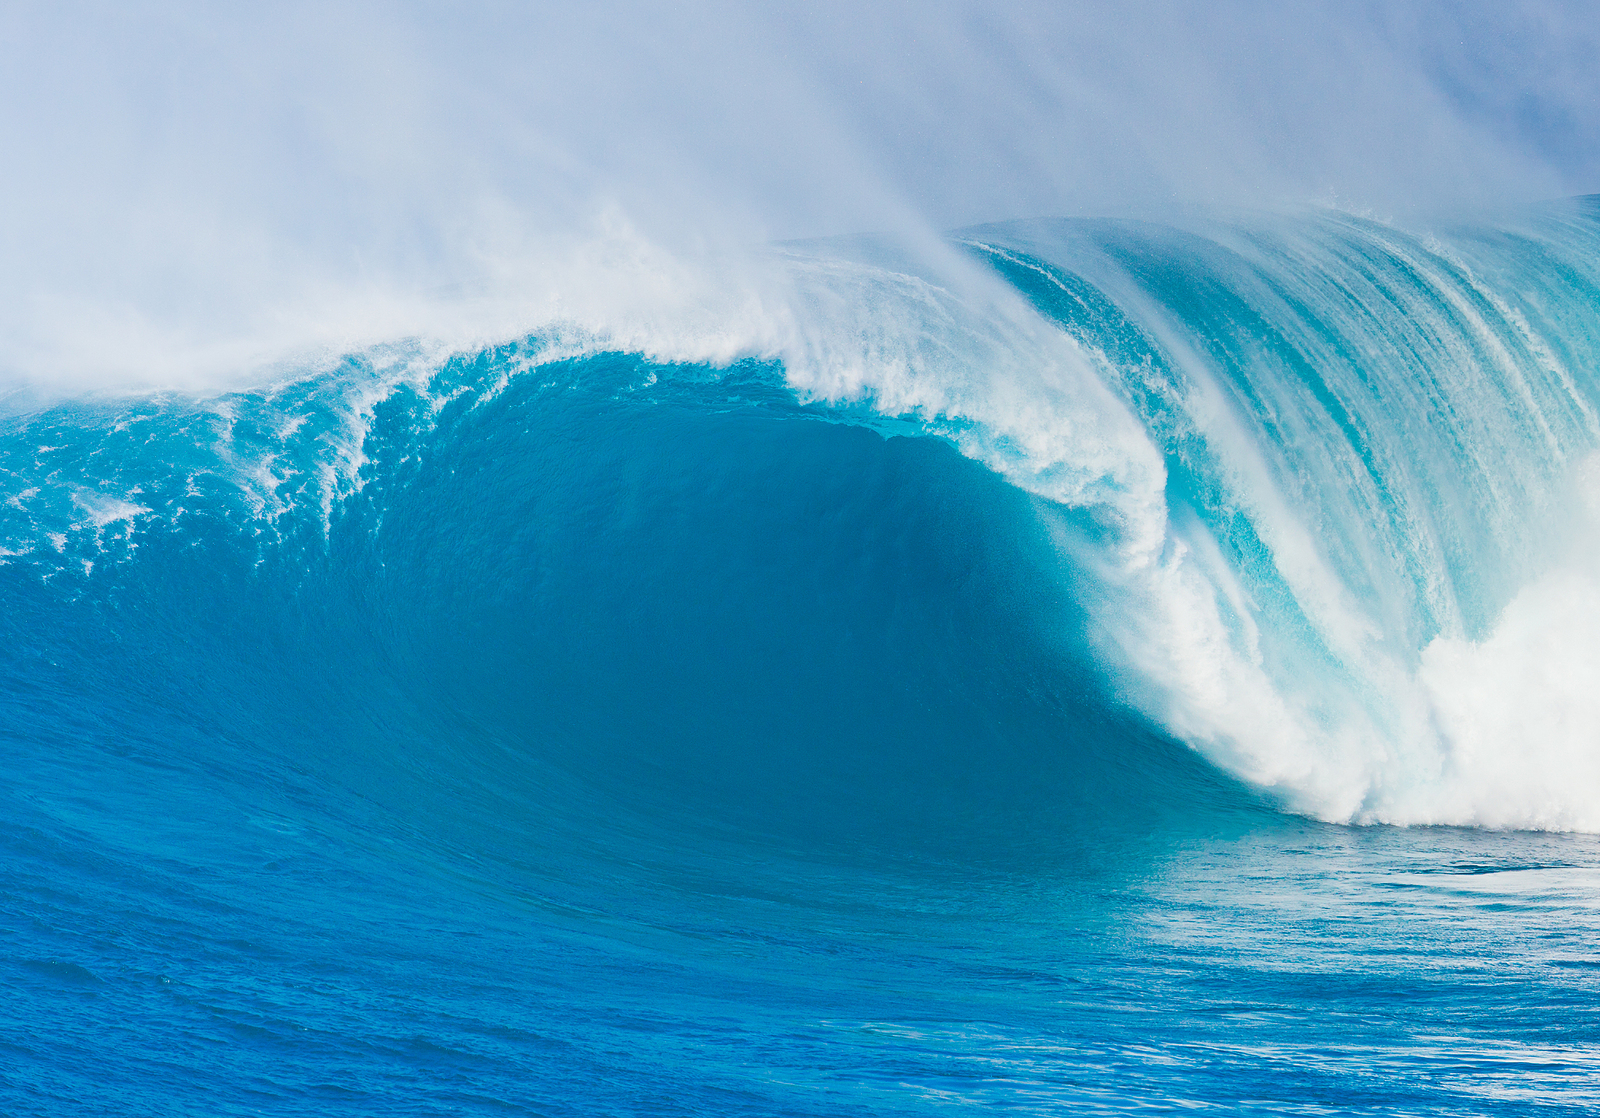 These 3 Things Form the Next Wave in Digital Marketing